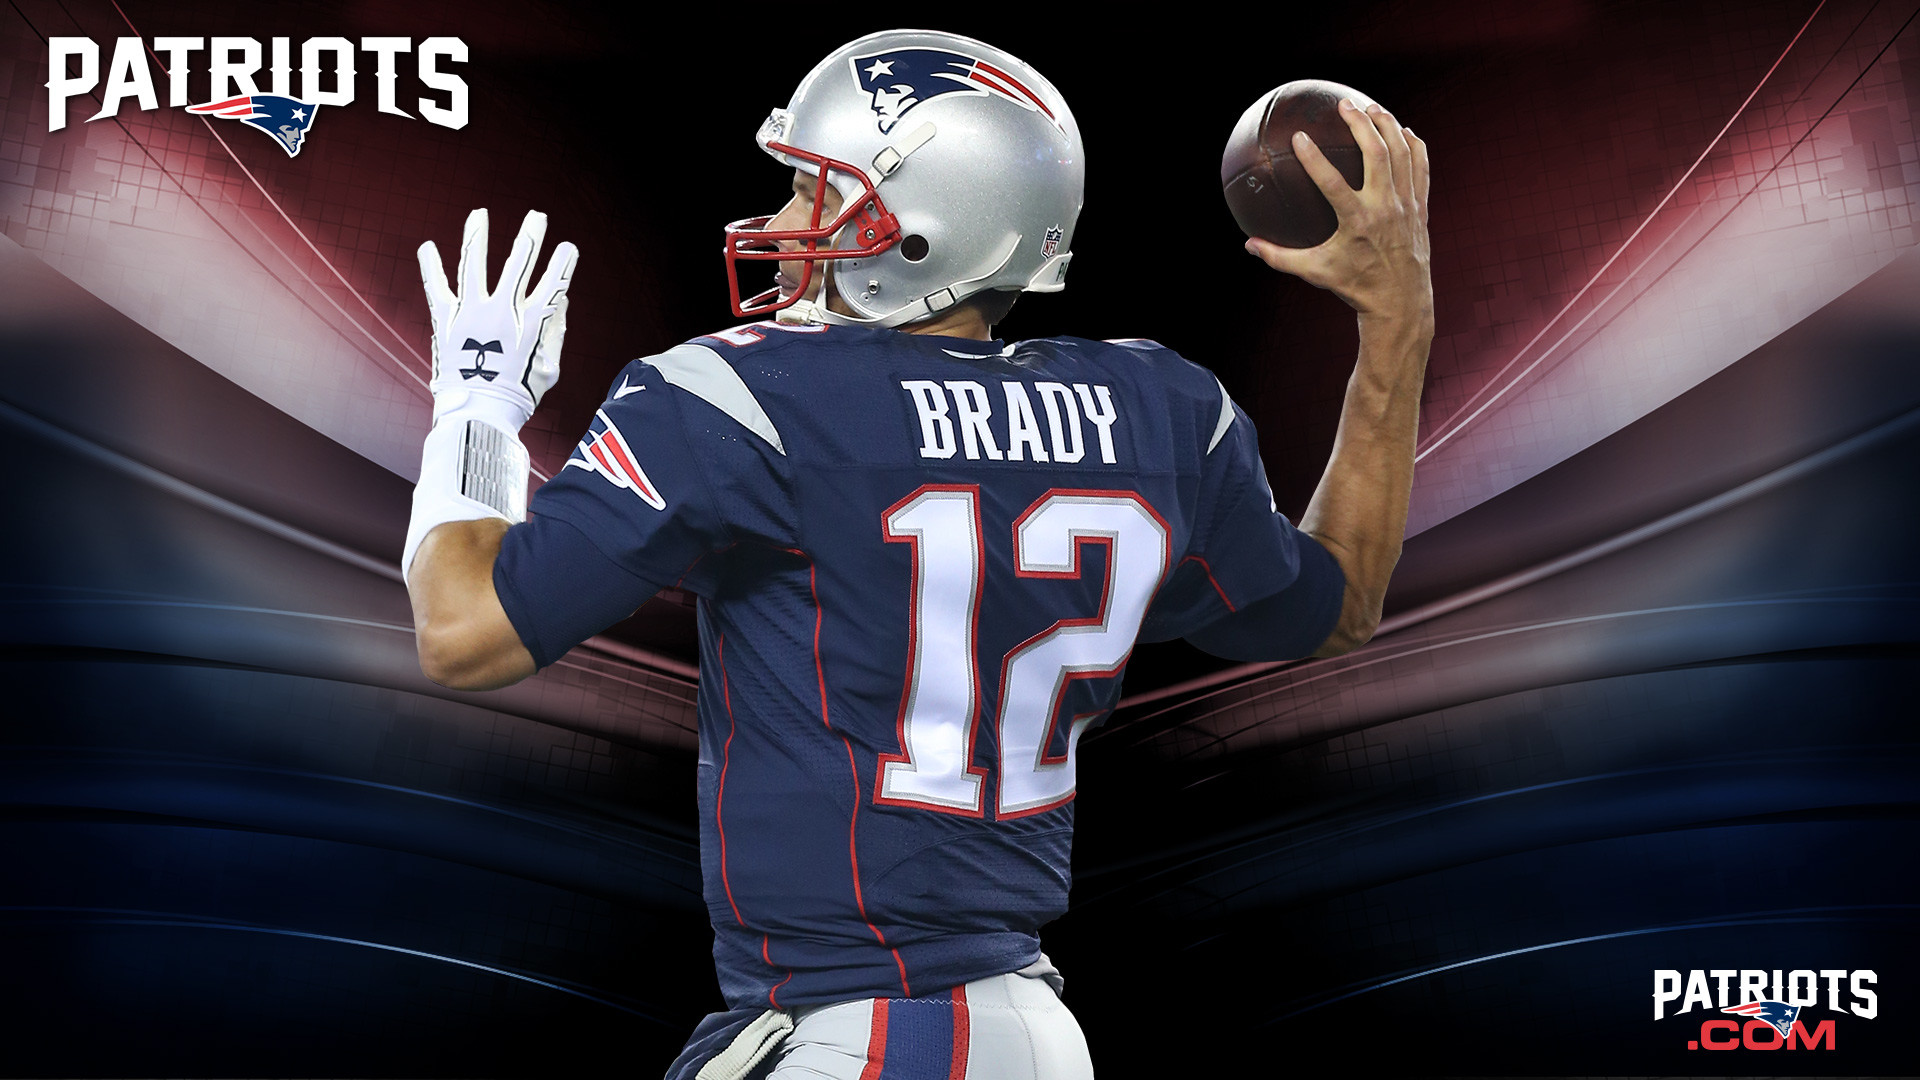 Download free wallpaper Patriots for mobile phone 640×960 Free Patriots  Wallpapers (34 Wallpapers